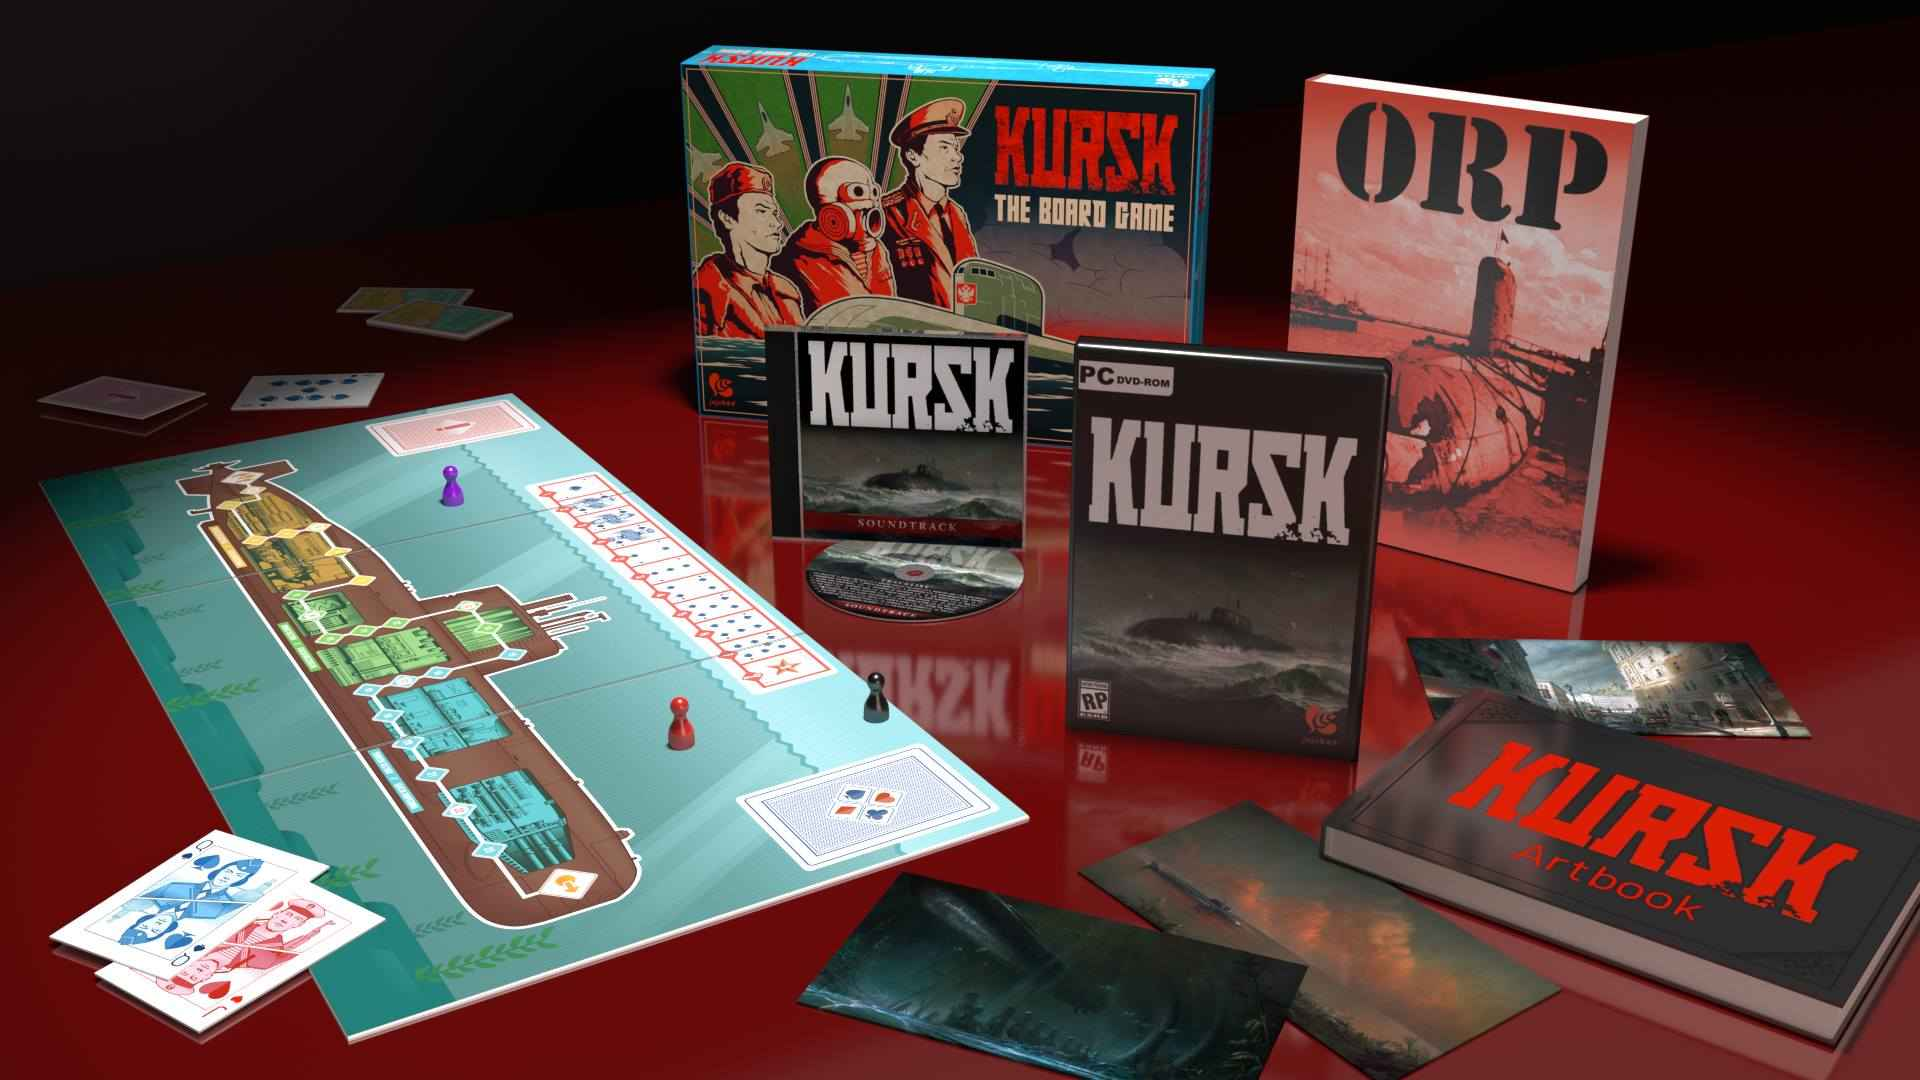 KURSK Release reveal